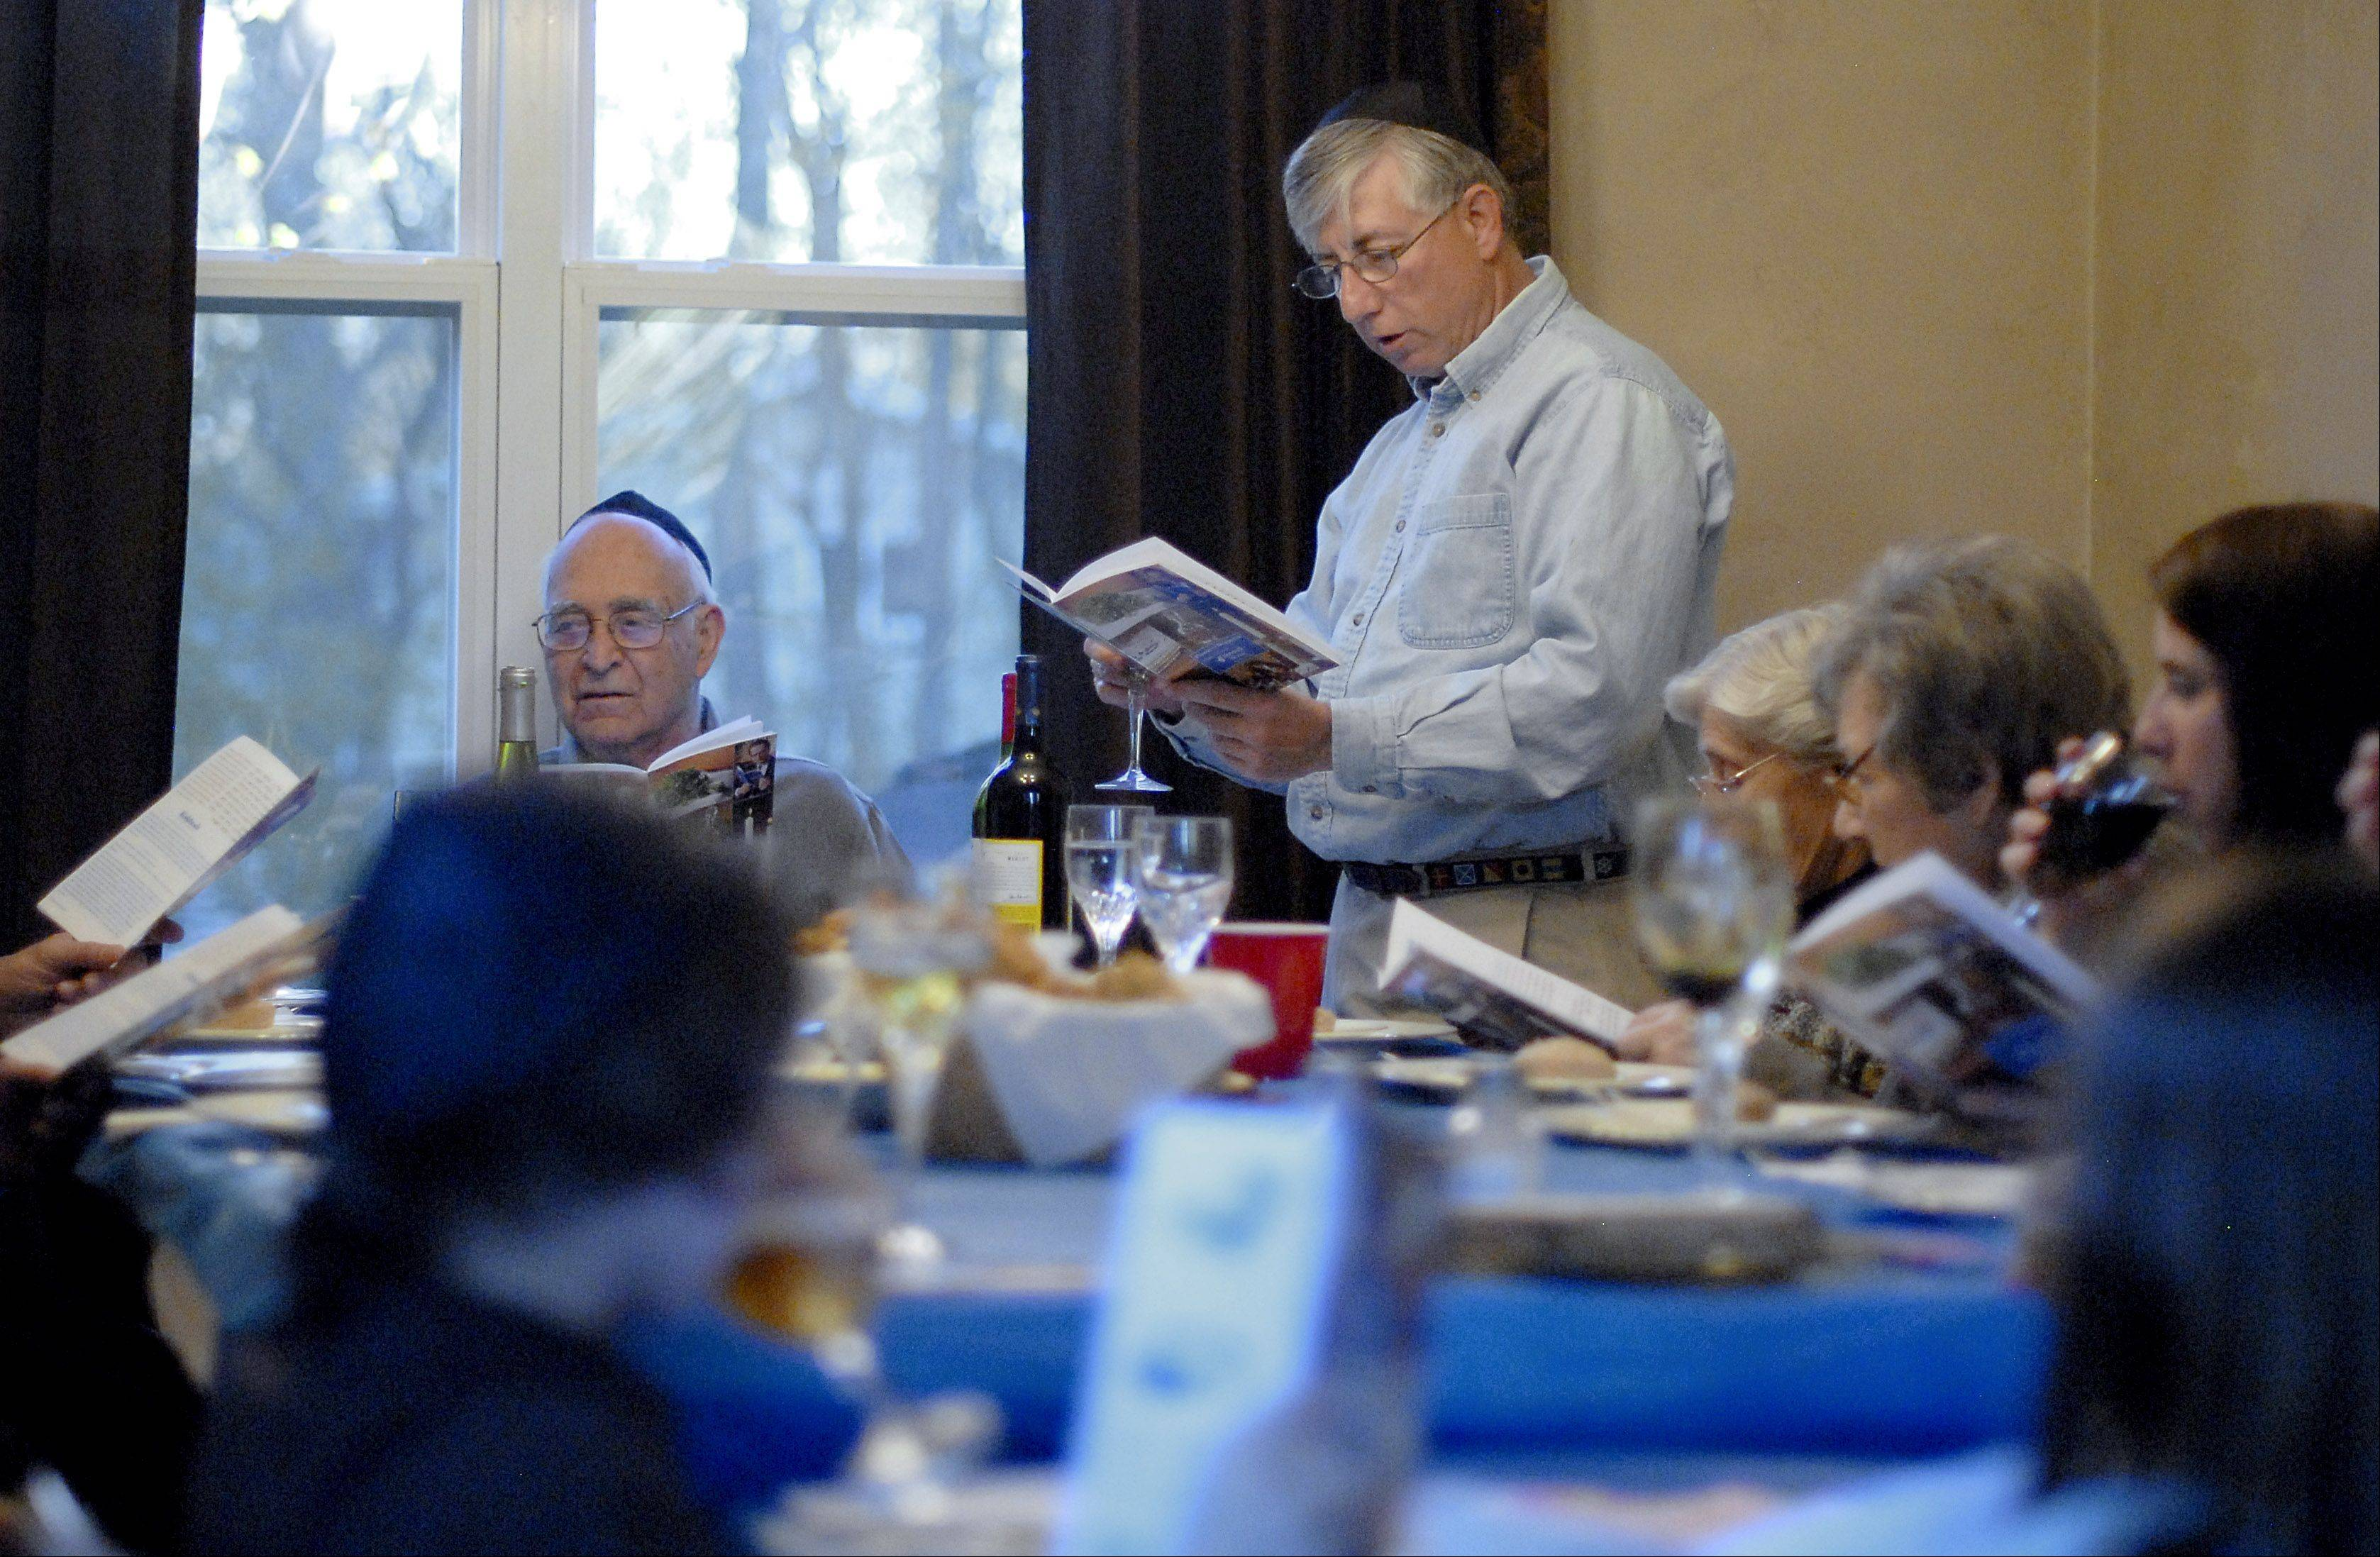 Jewish preparations lead to Seder here, abroad